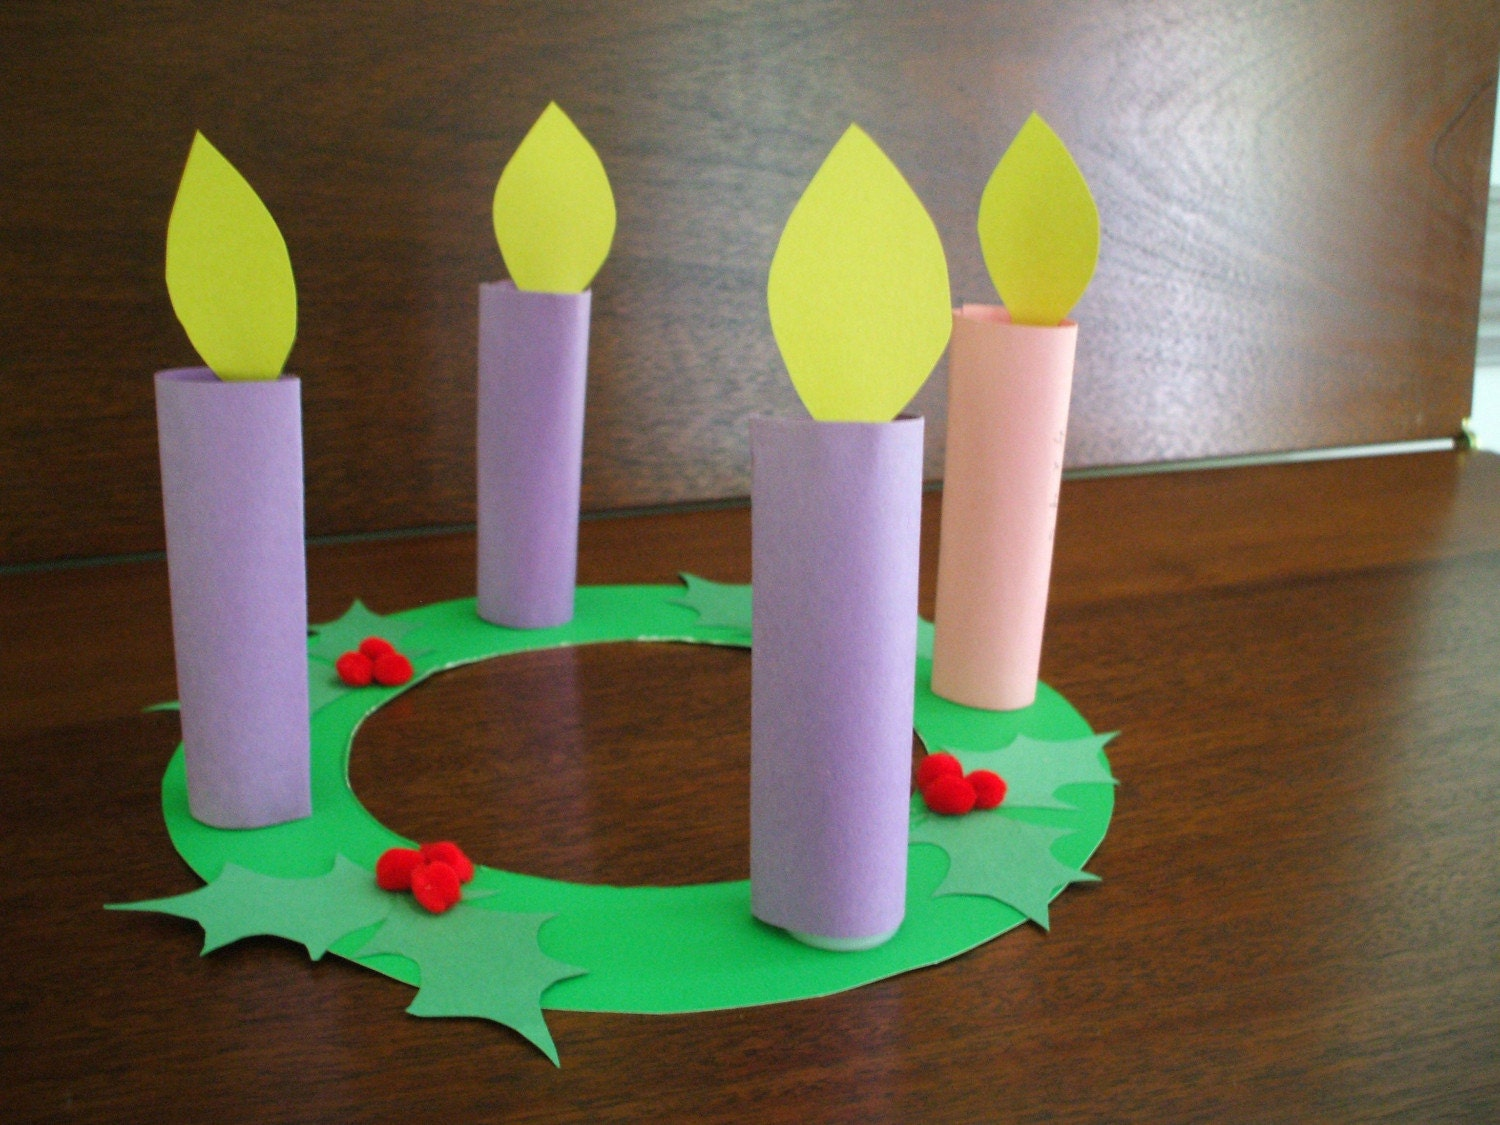 advent wreath children's craft kit by GraceHill on Etsy